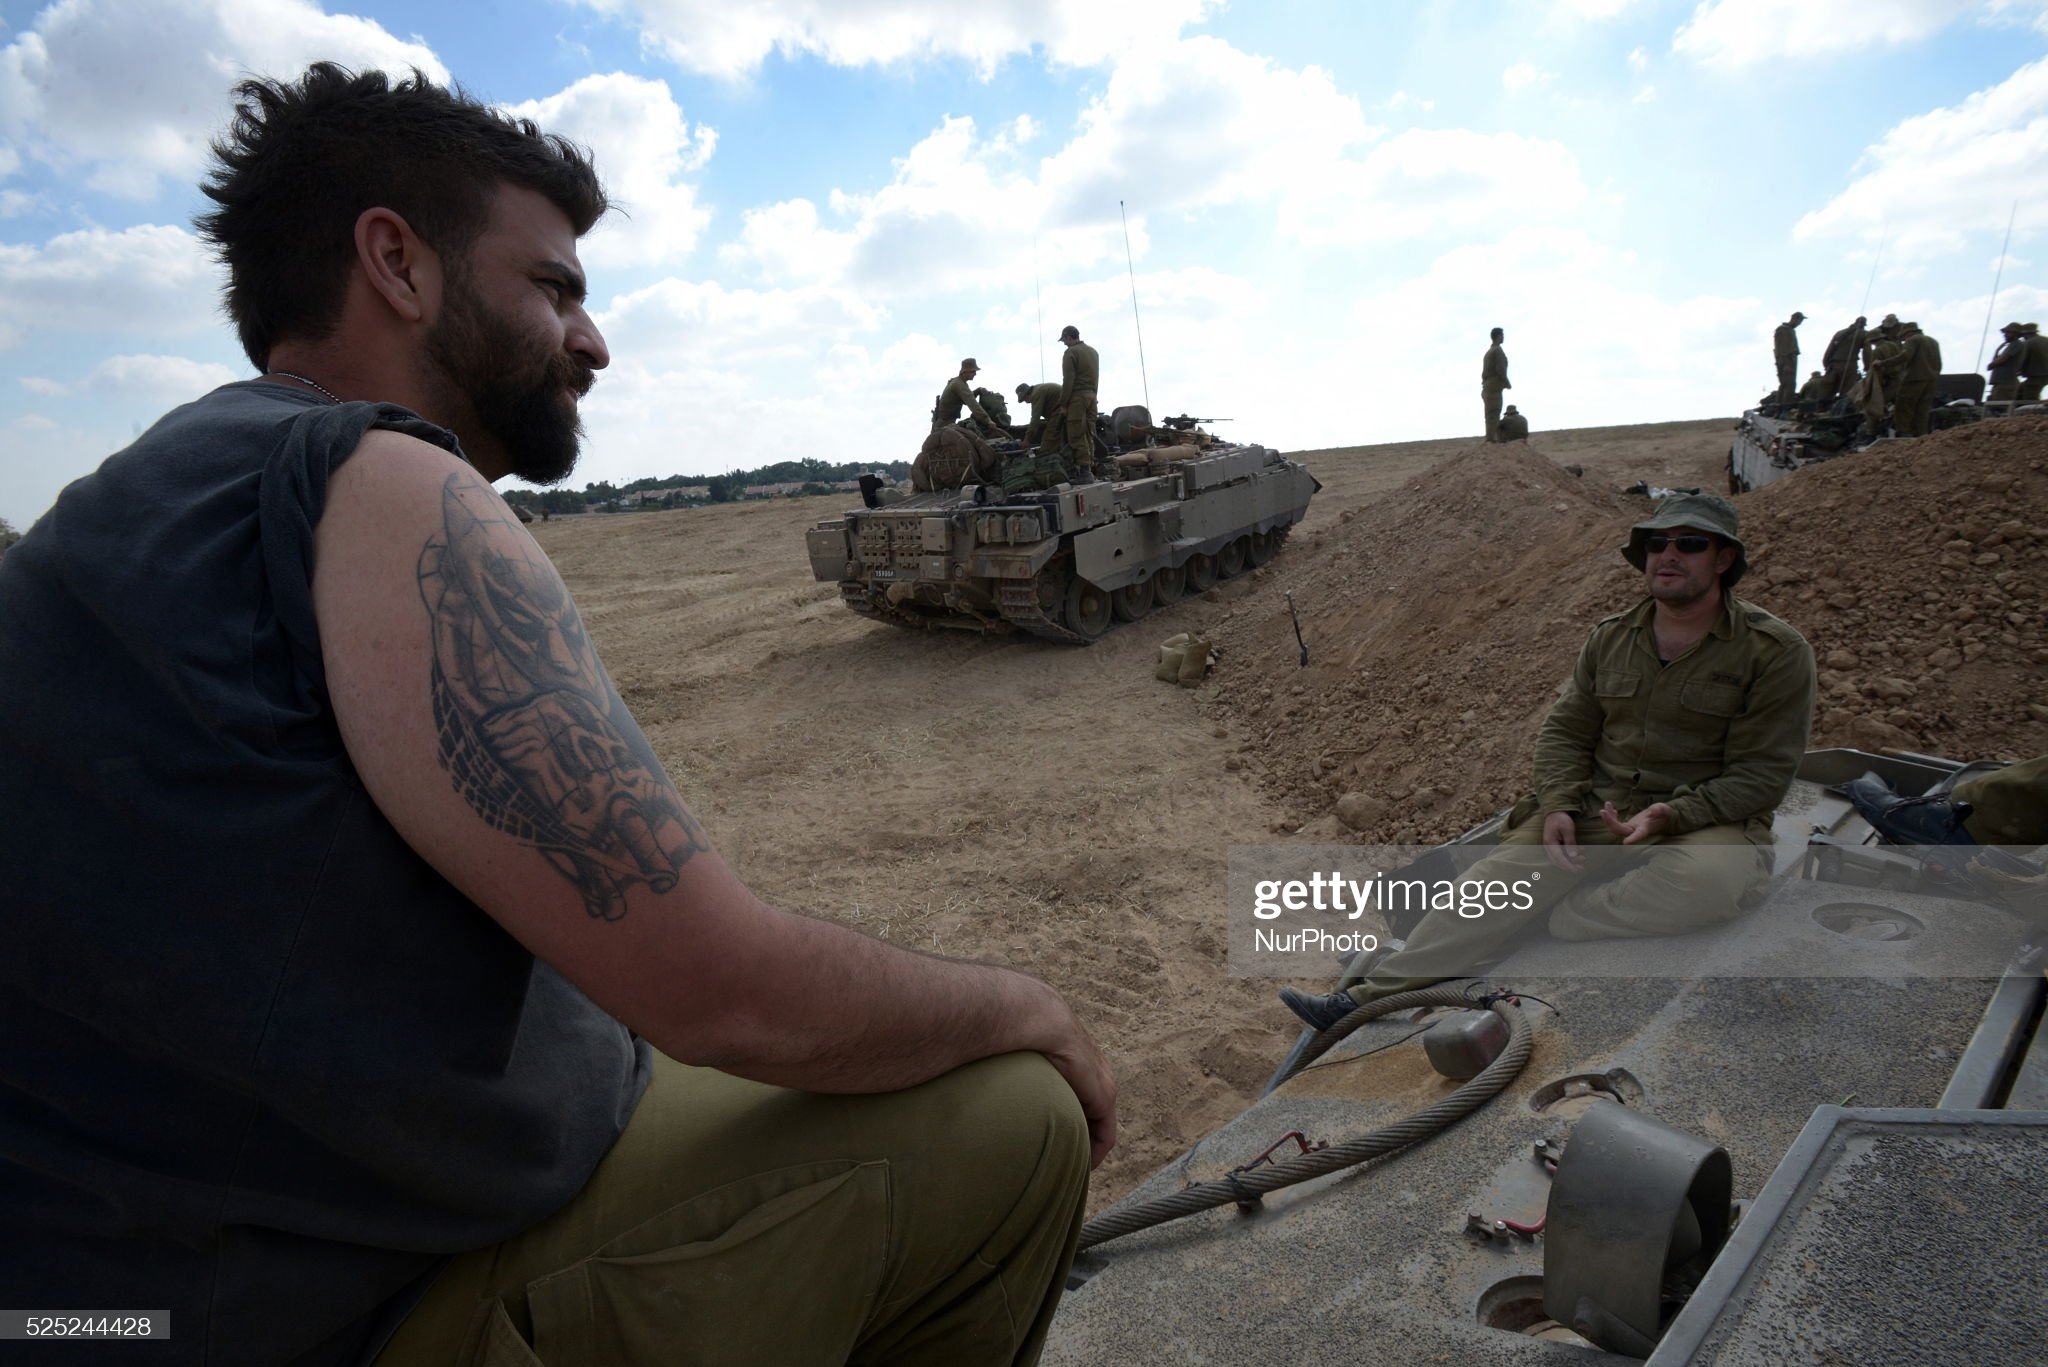 https://media.gettyimages.com/photos/israeli-reserve-soldiers-in-an-army-deployment-area-near-israels-picture-id525244428?s=2048x2048